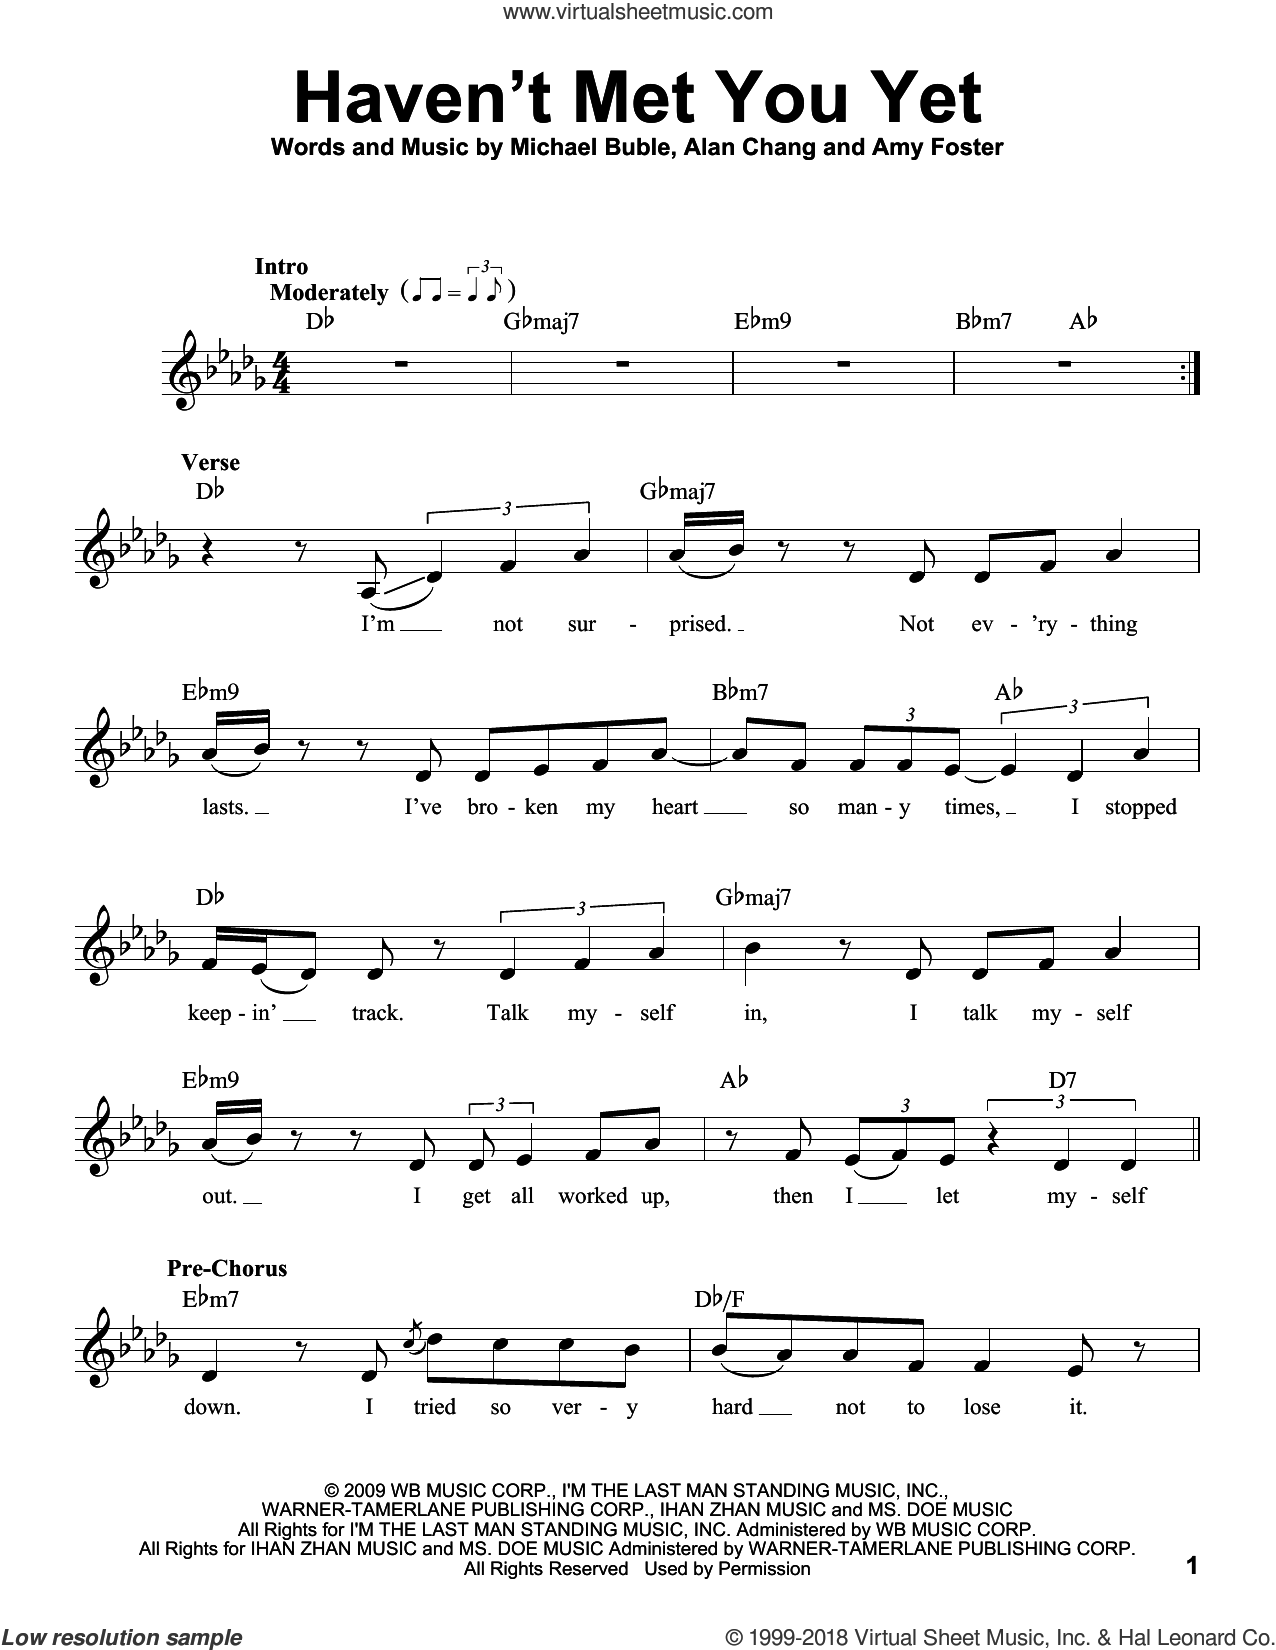 Haven't Met You Yet sheet music for voice solo by Michael Buble, Alan Chang and Amy Foster, intermediate skill level